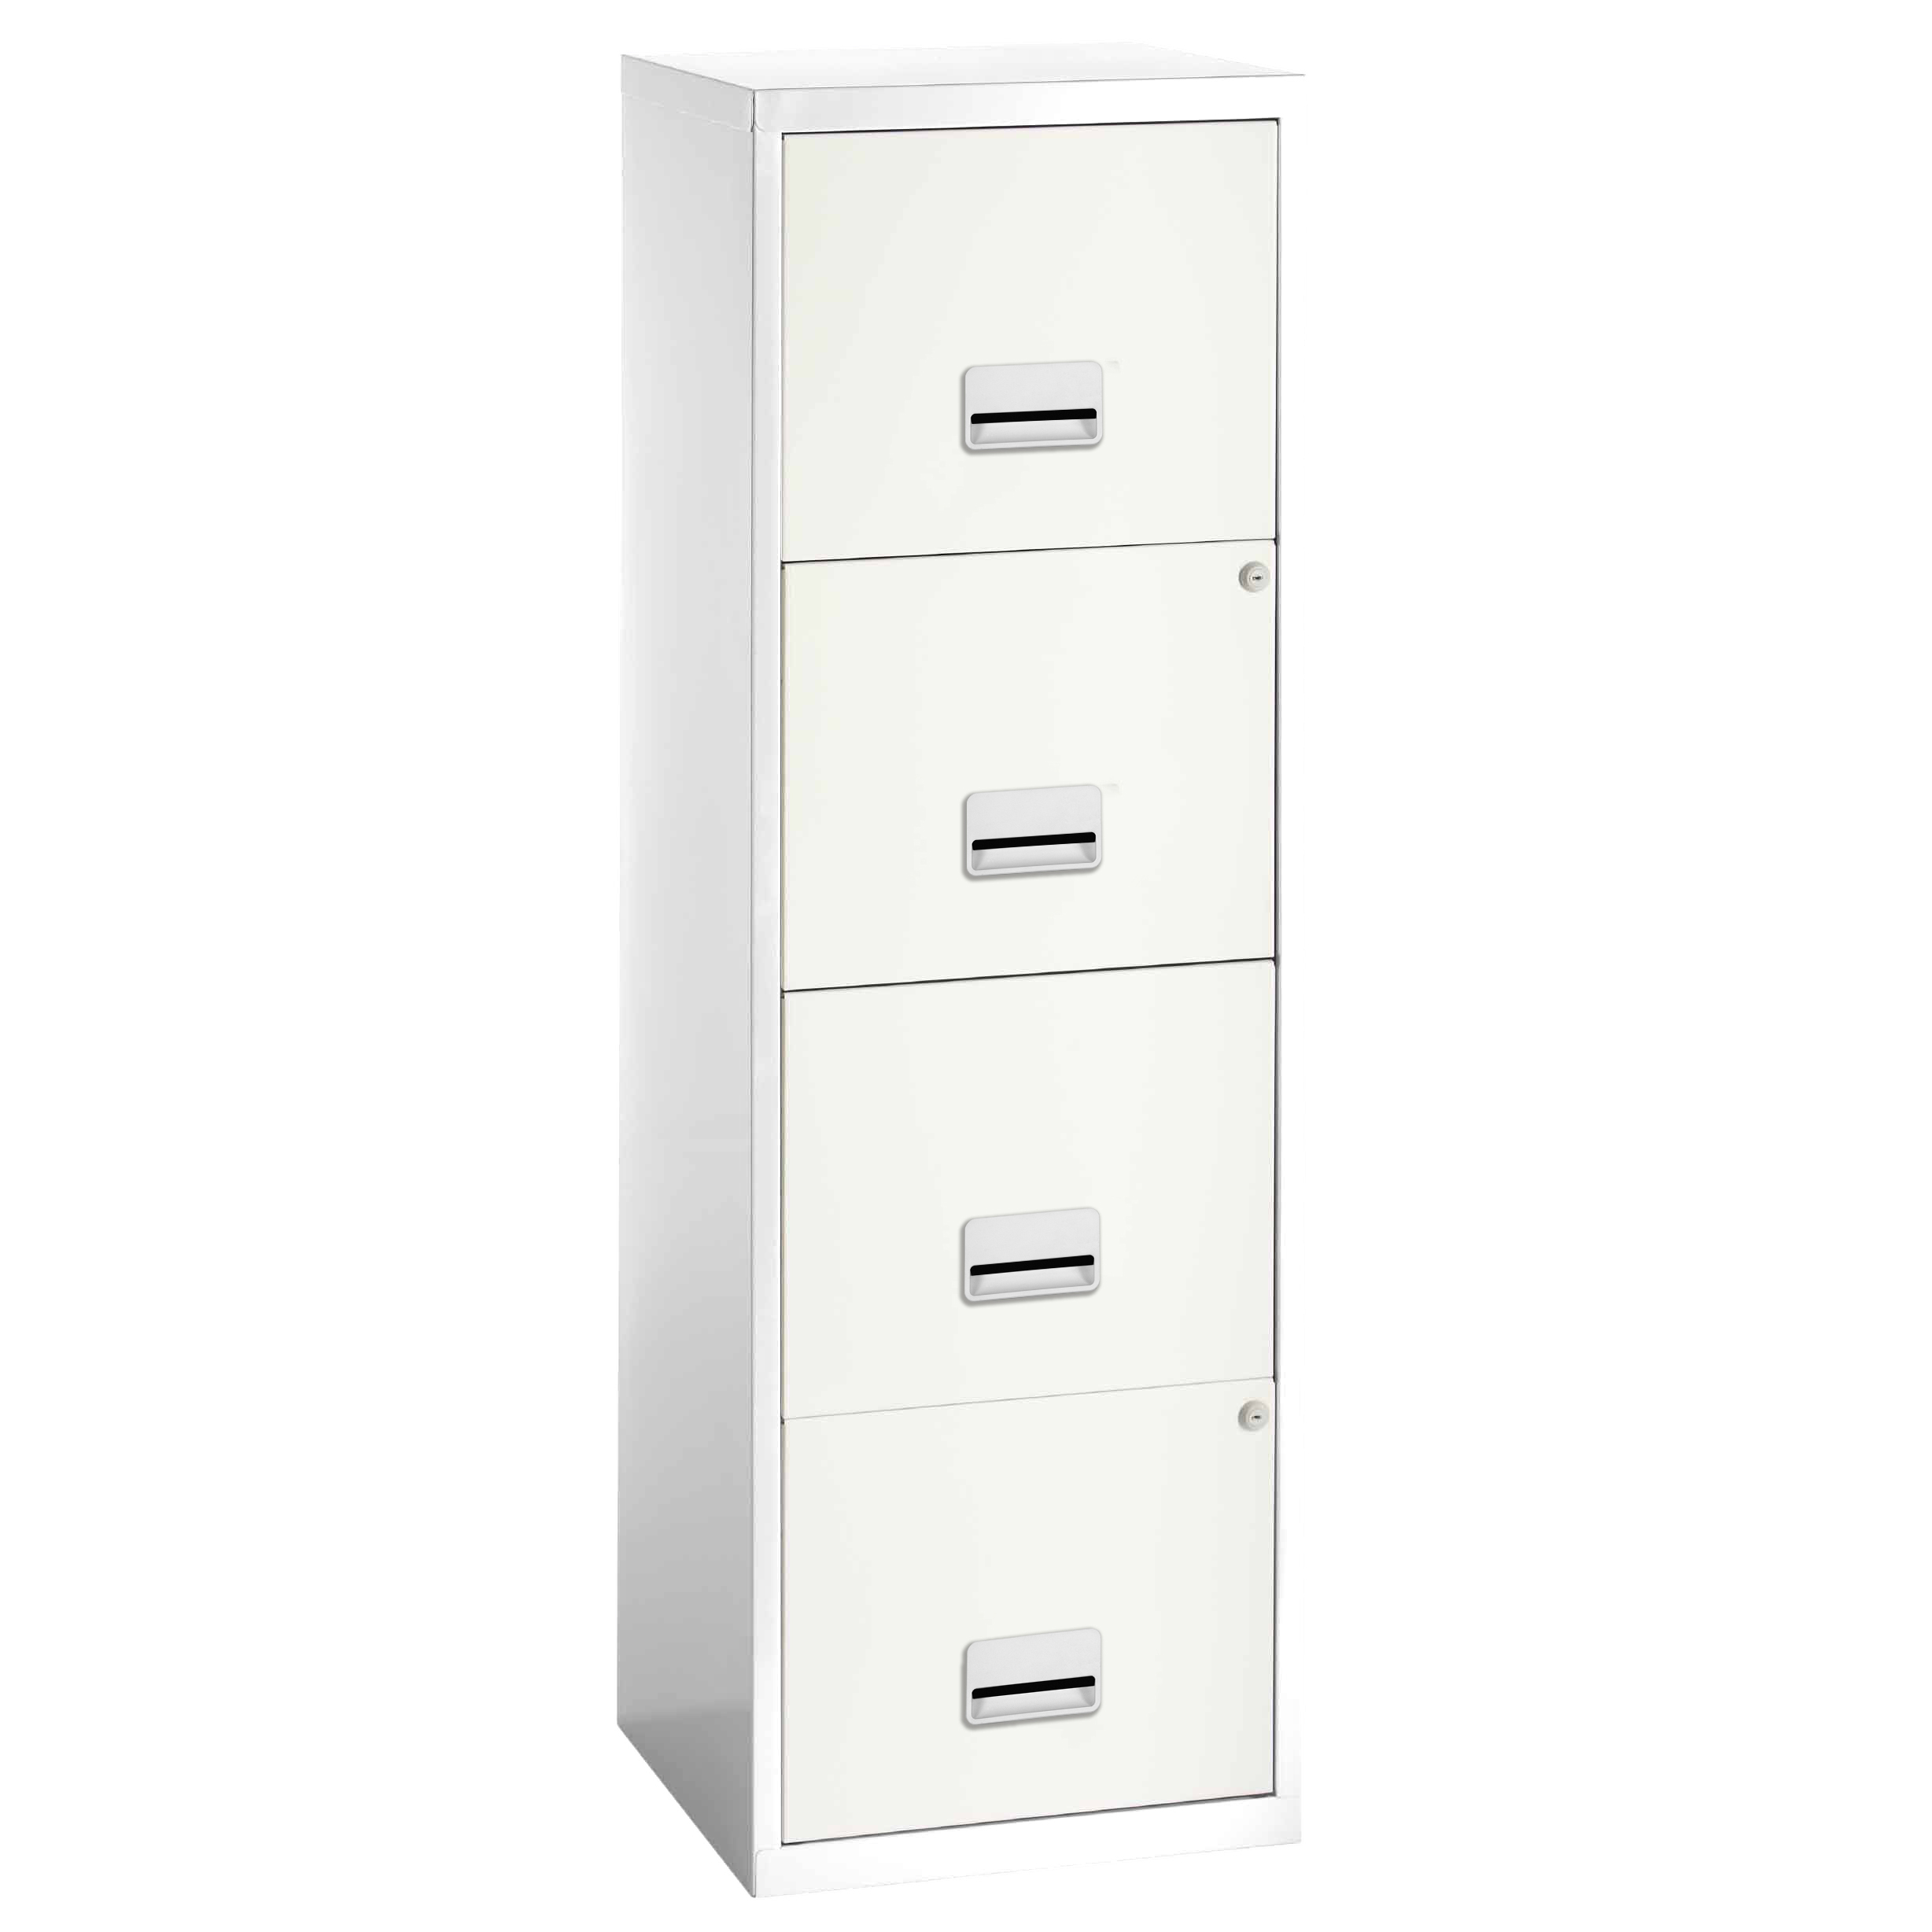 Filing cabinets or accesories Pierre Henry Maxi Filing Cabinet 4 Drawer A4 White Ref 095044